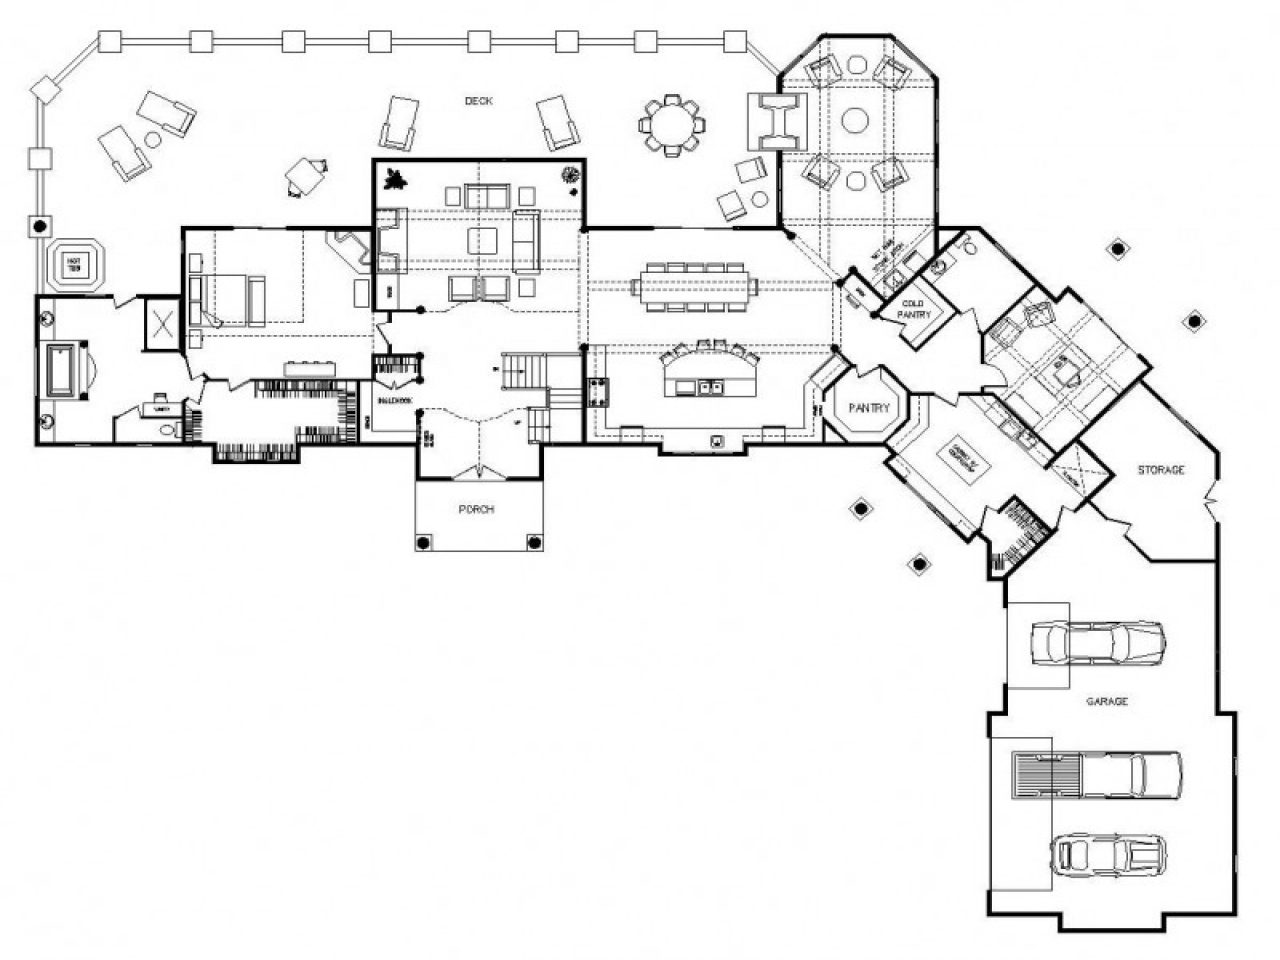 One story log home floor plans one story log home interior for One story house plans with interior photos